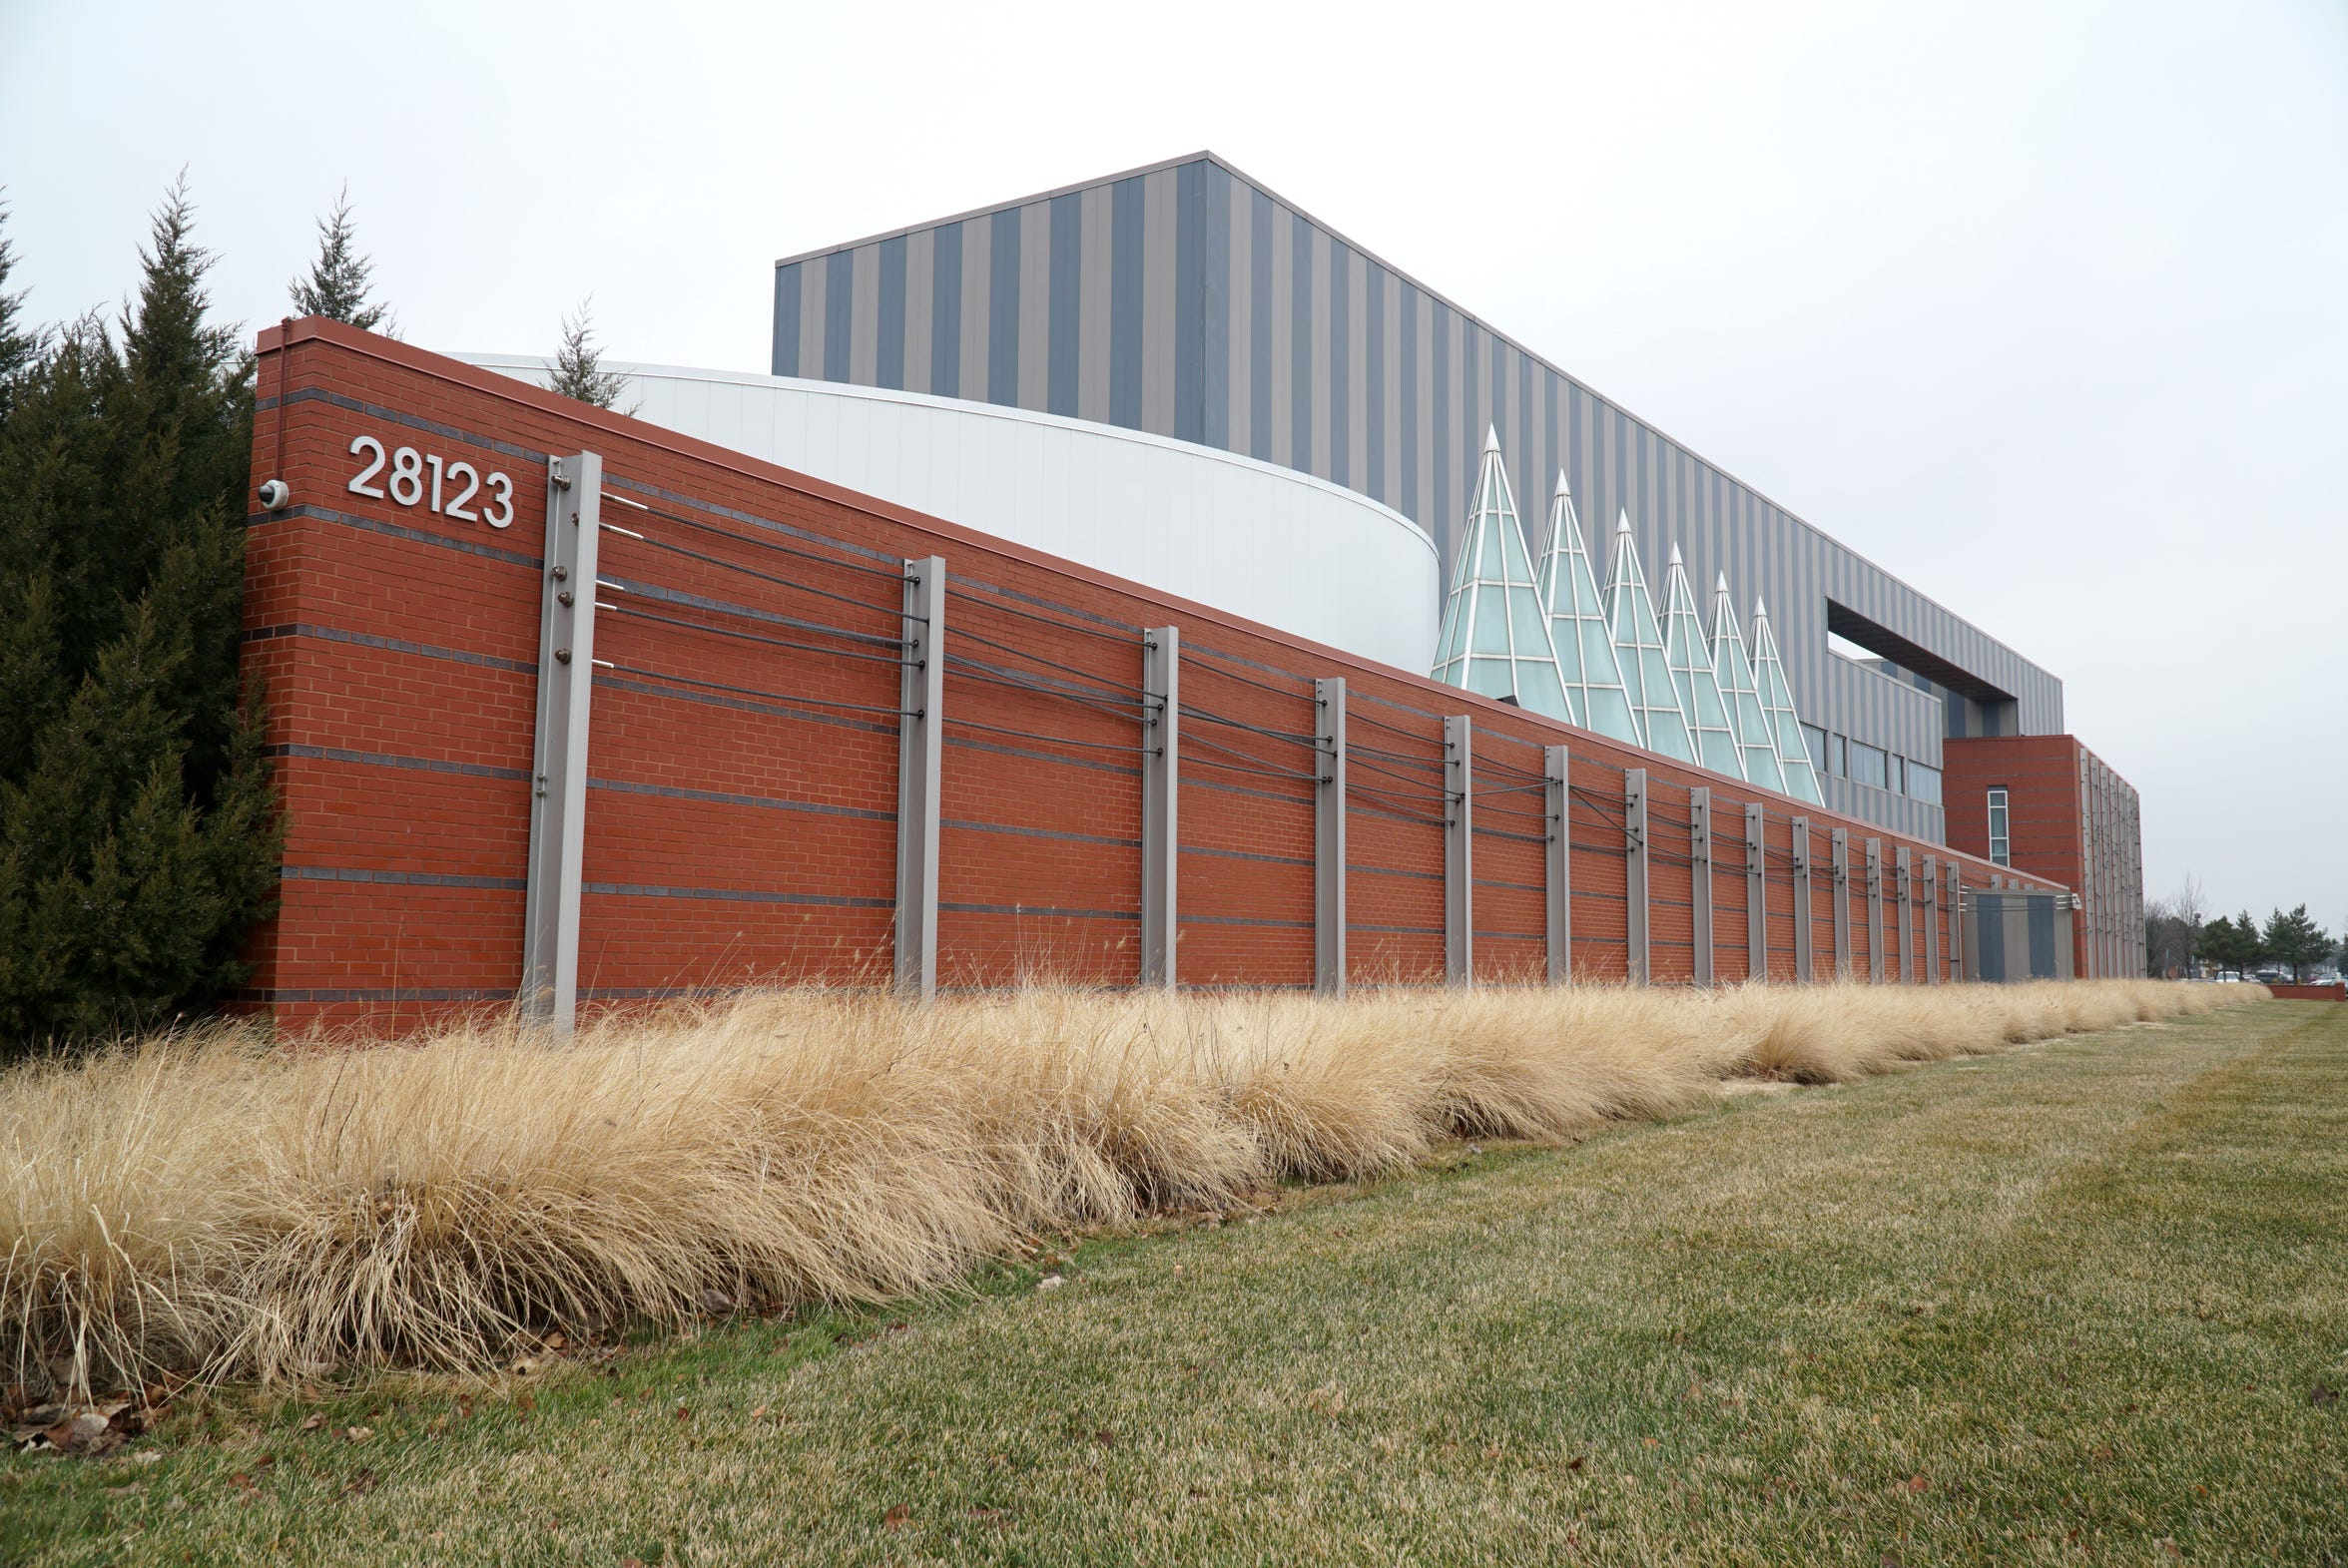 The Holocaust Memorial Center in Farmington Hills on Orchard Lake Road.